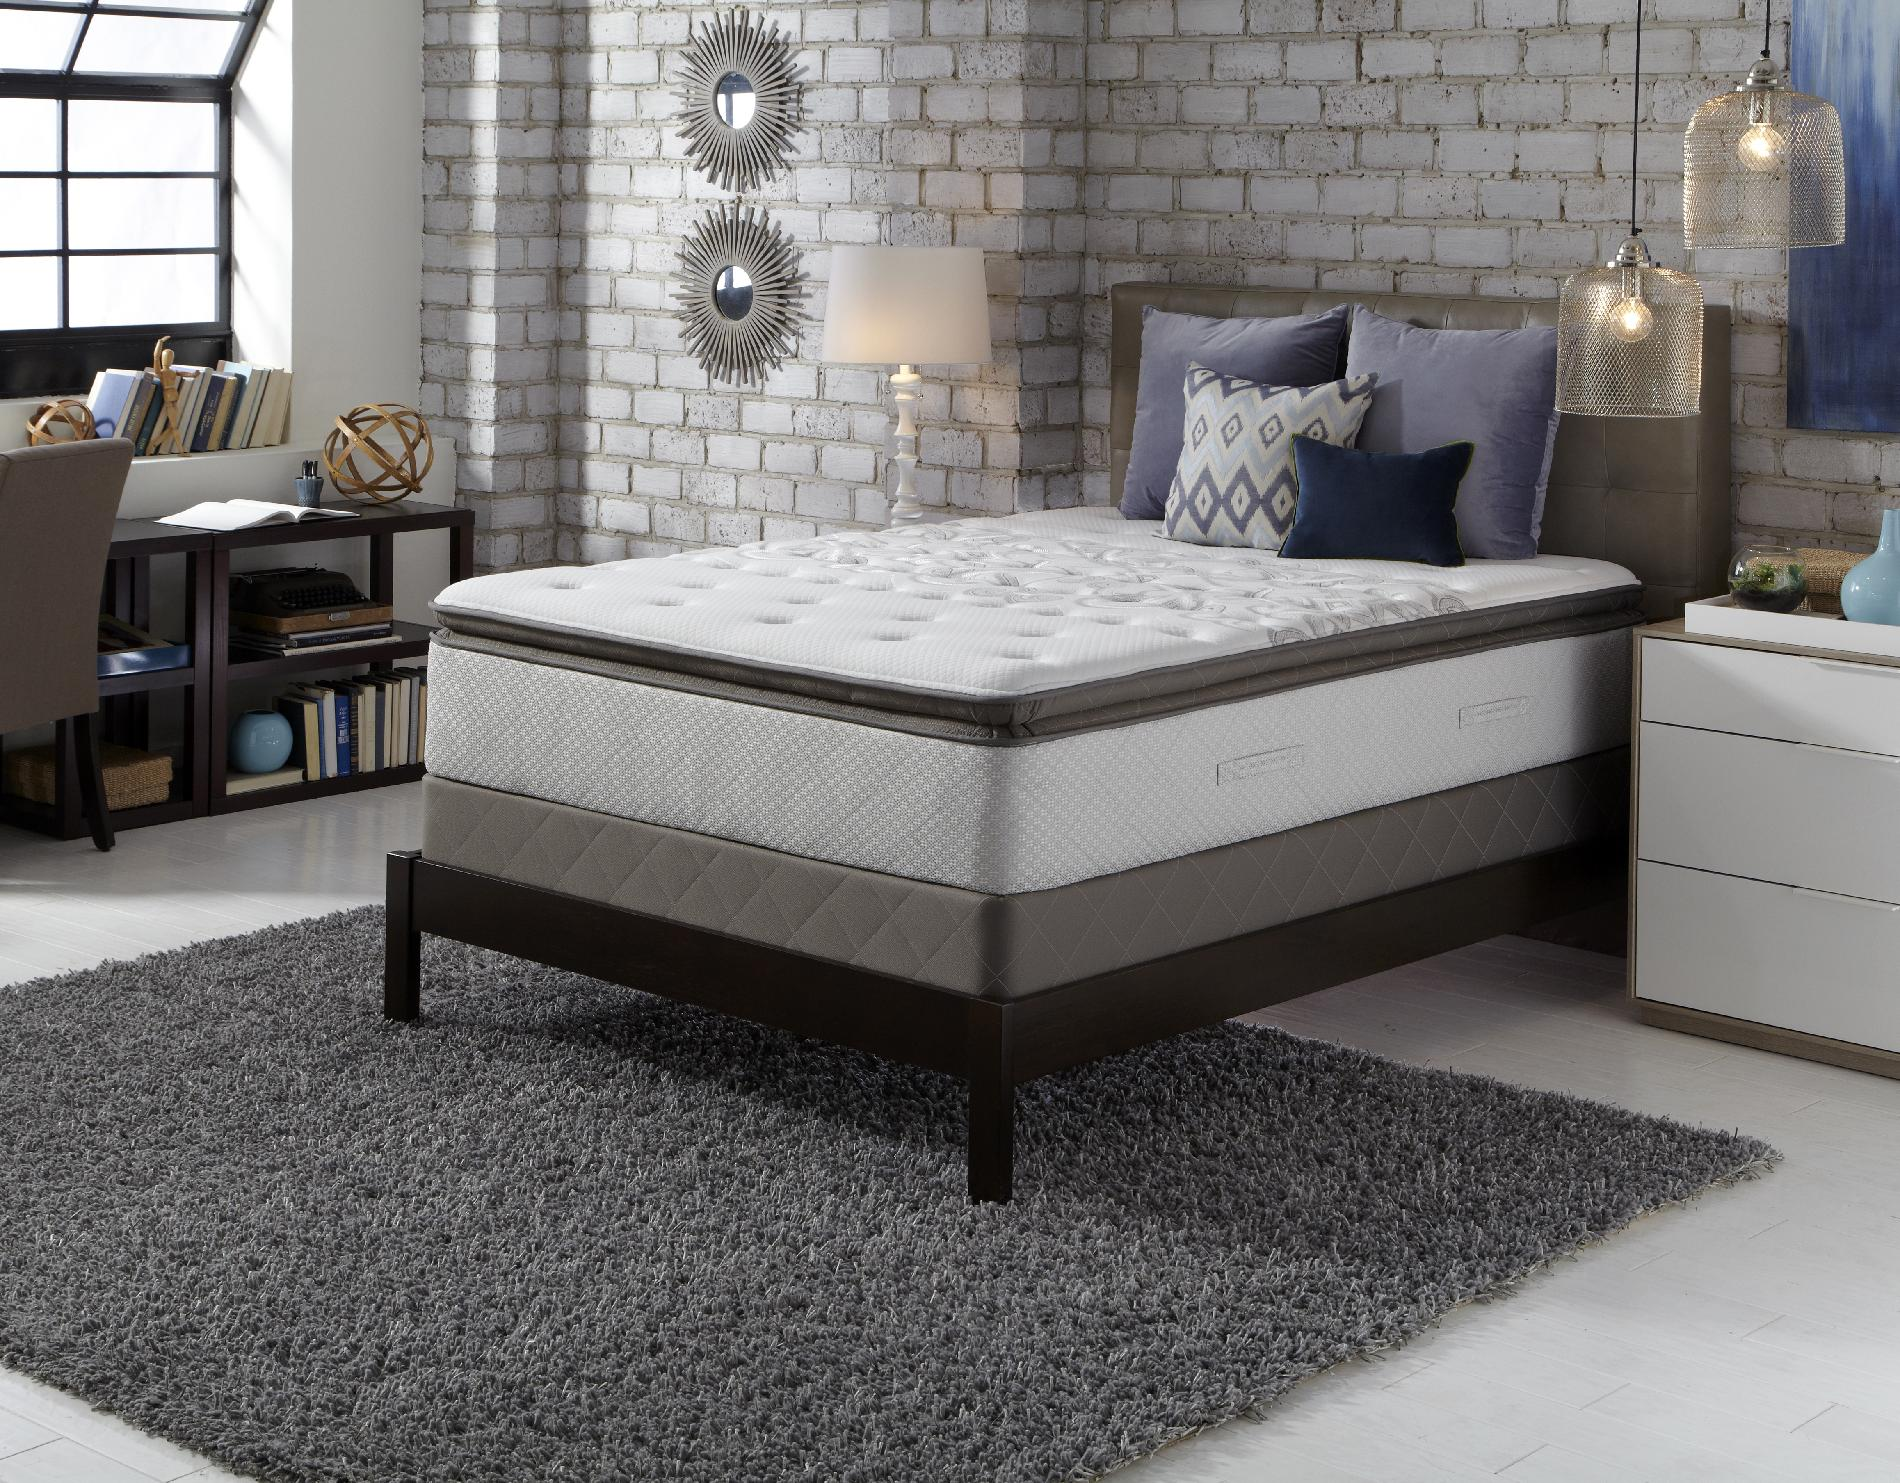 Sealy Posturepedic Fergus Falls Ti2 II, Plush Euro Pillowtop, California King Mattress Only